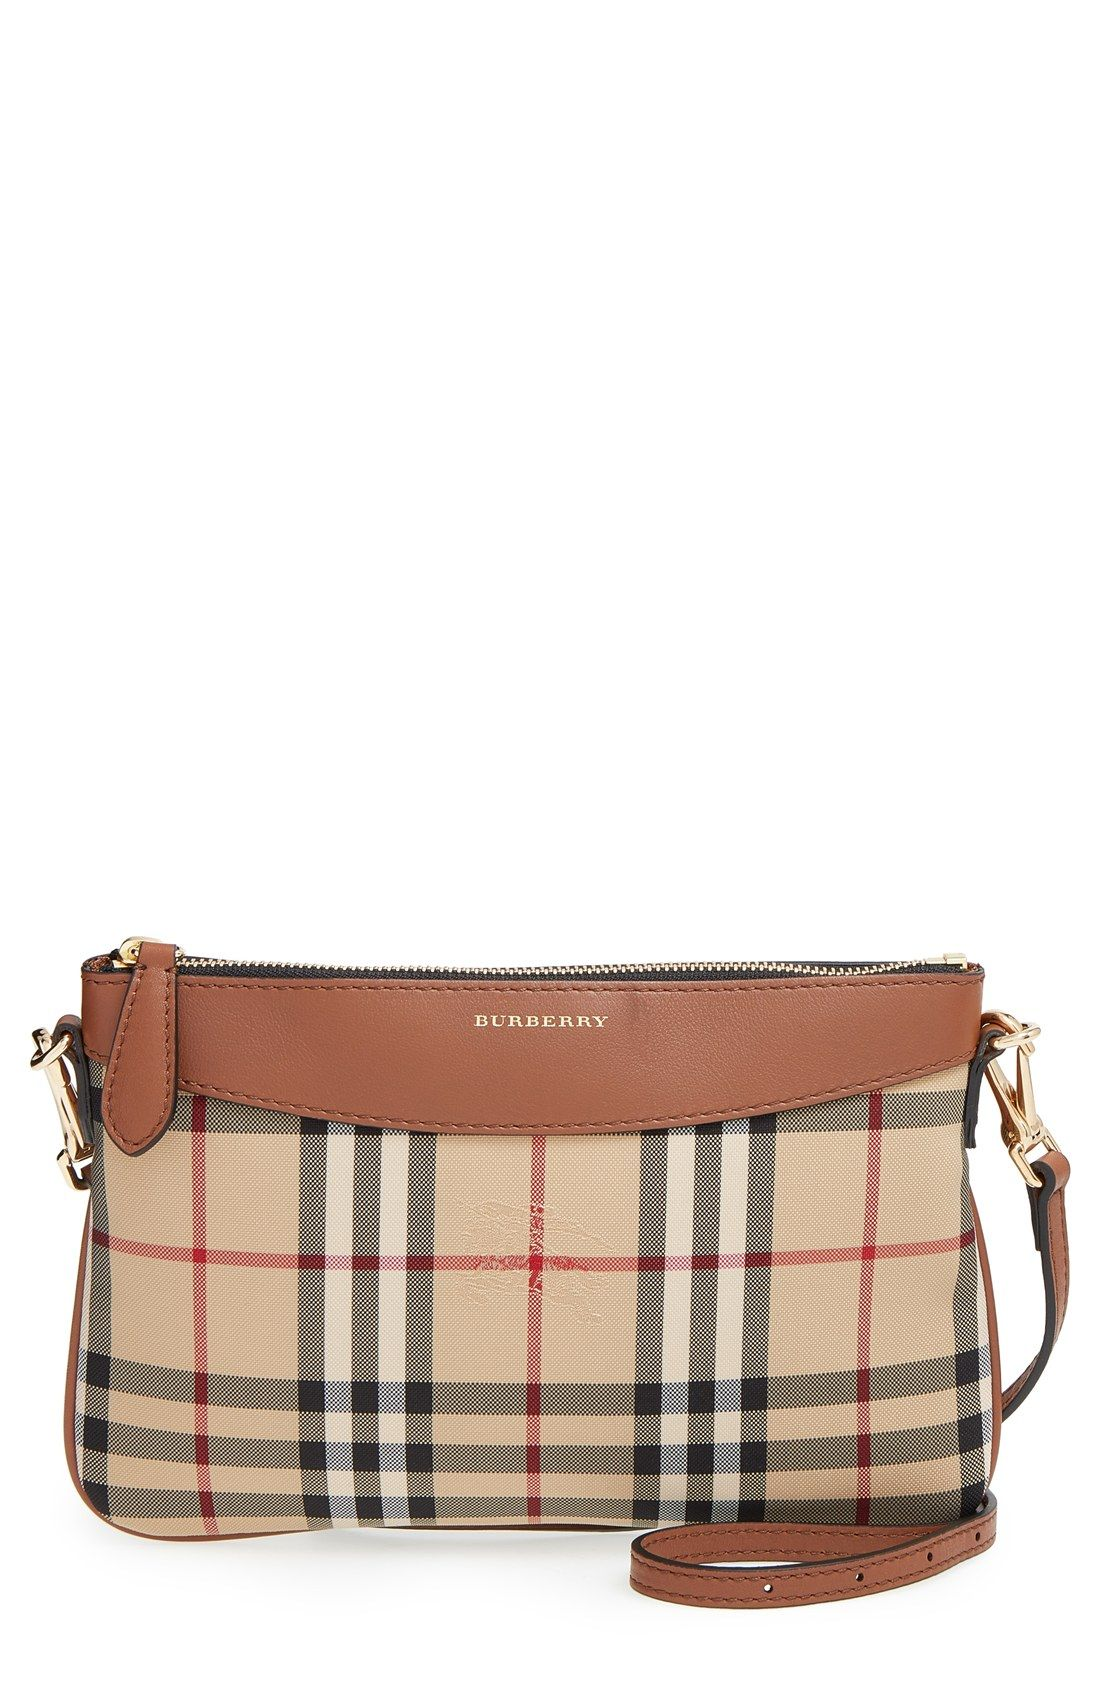 d5084a38550d Burberry  Peyton - Horseferry Check  Crossbody Bag